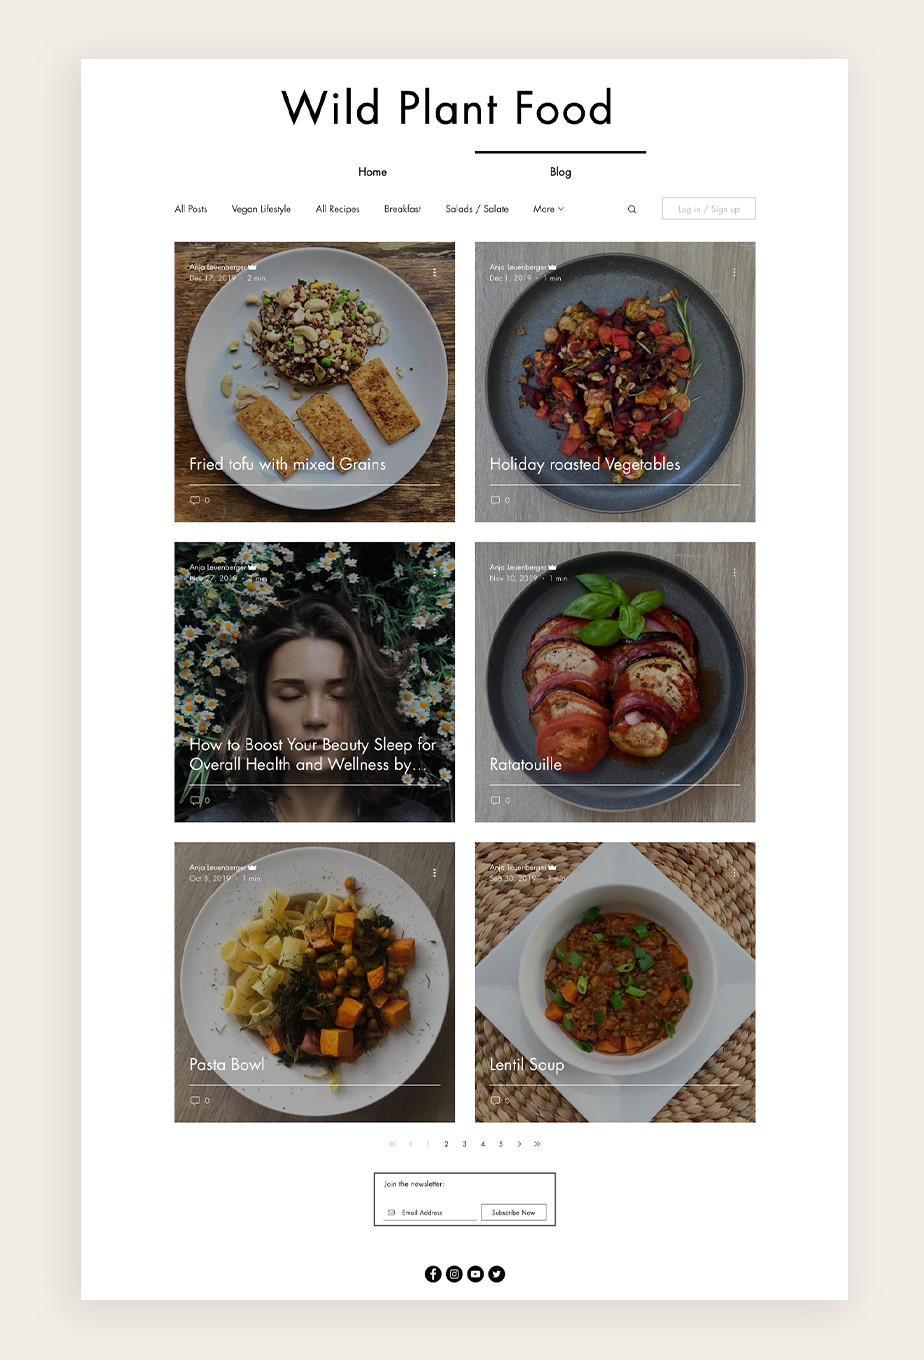 types of blogs: food blogs example from Wild Plant Food